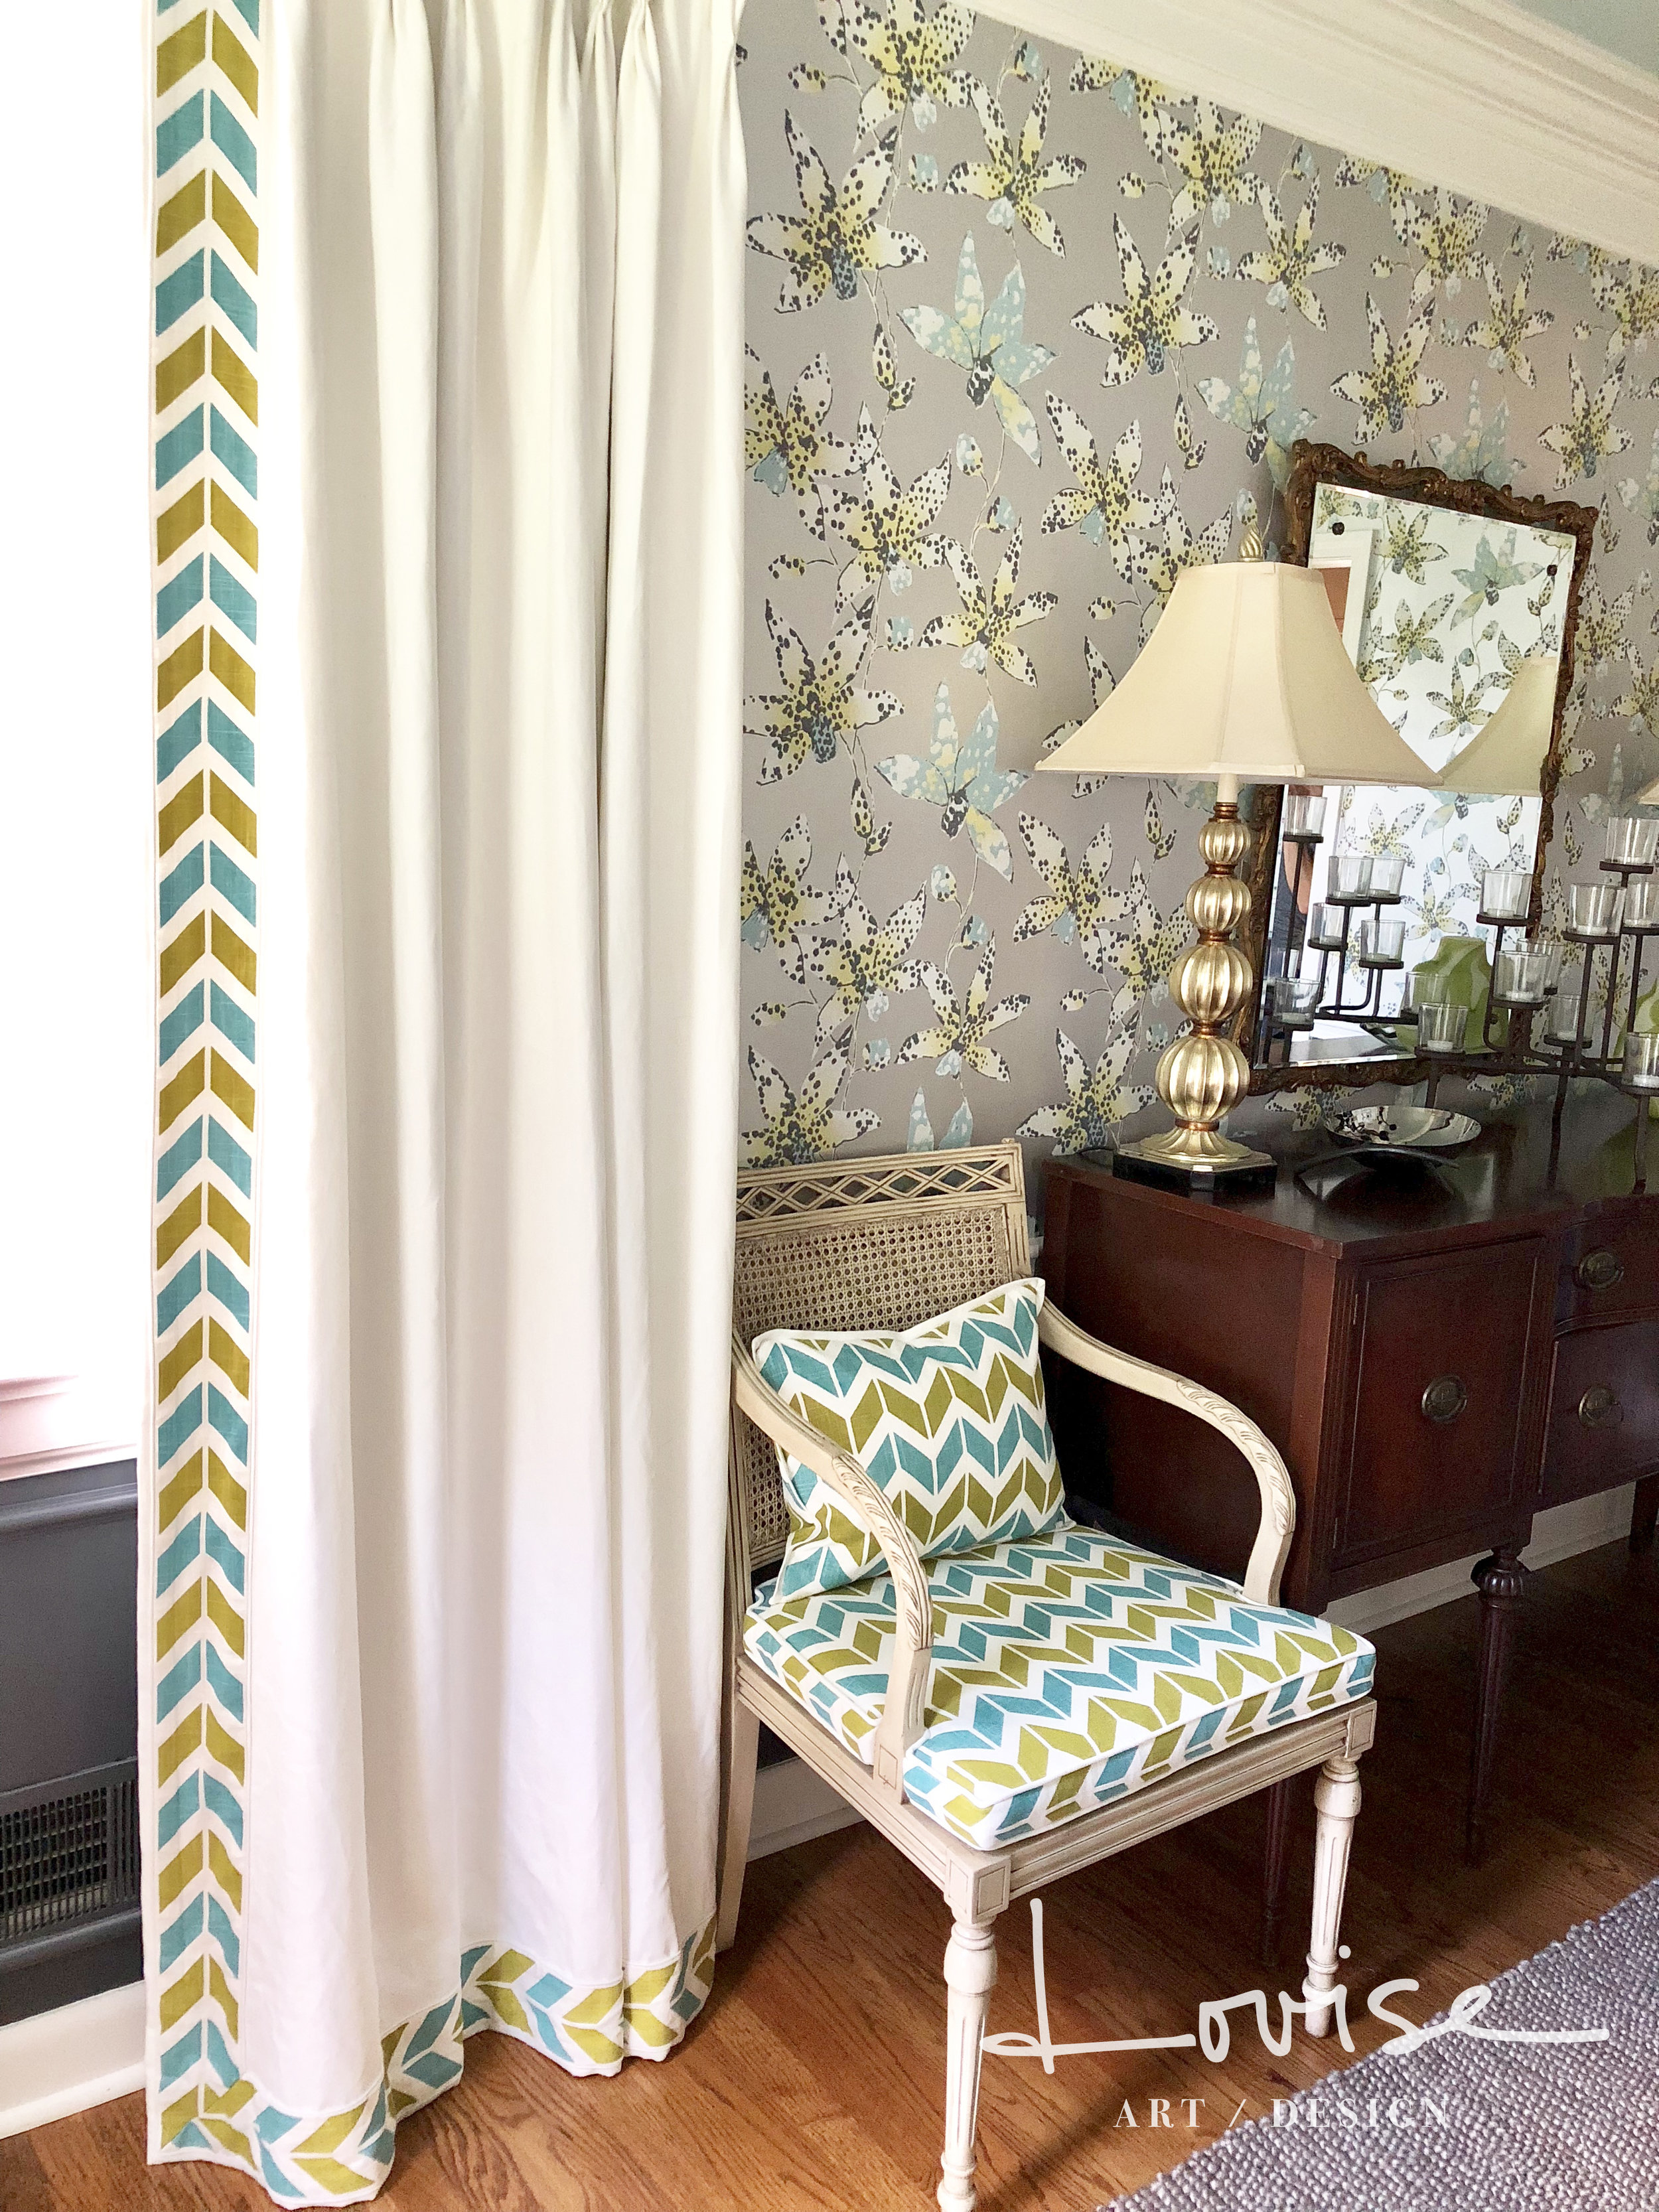 Dining room with metallic orchid wallpaper, custom draperies with teal and chartreuse chevron details